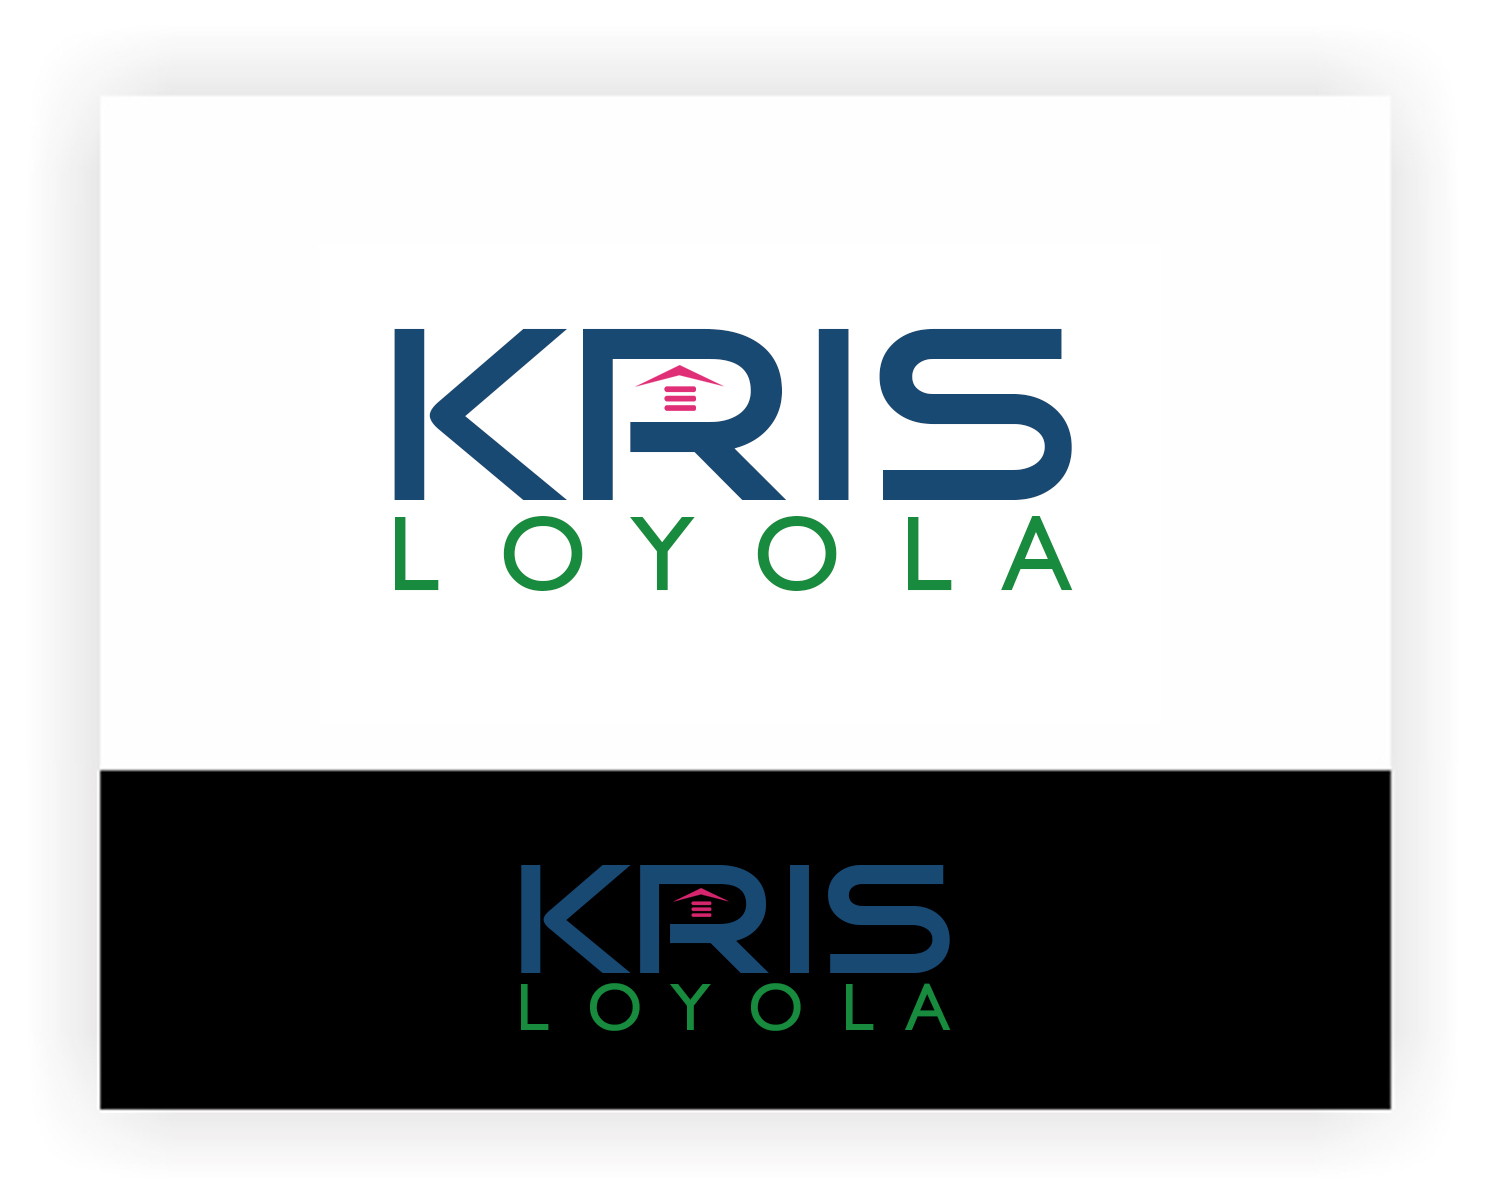 Logo Design by Burhan uddin Sheik - Entry No. 80 in the Logo Design Contest Kris Loyola Logo Design.